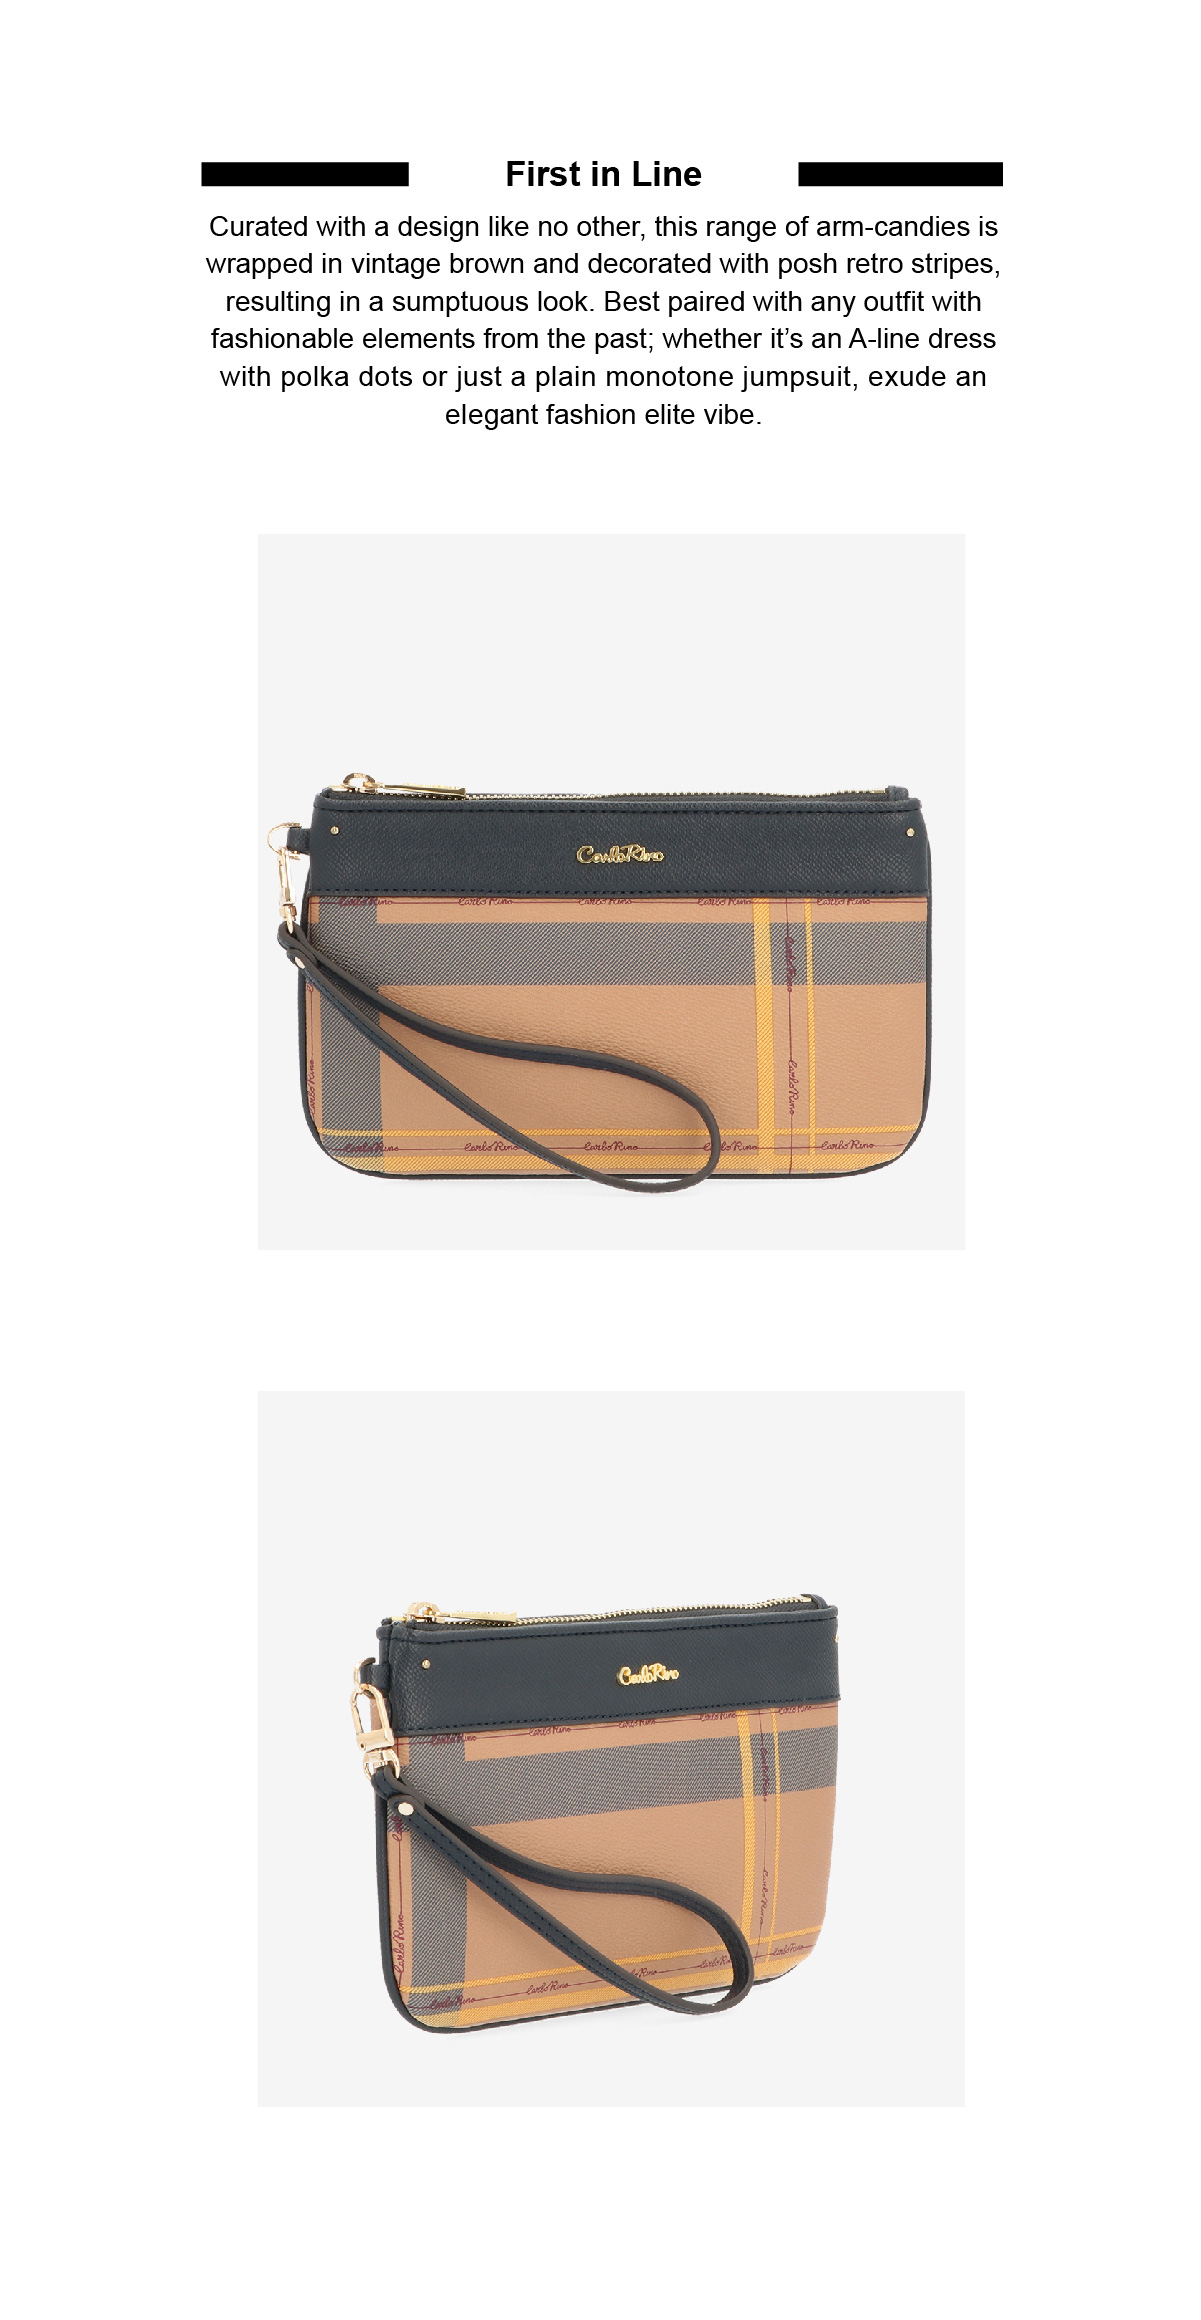 0304828H 702 13 02 - First in Line Wristlet